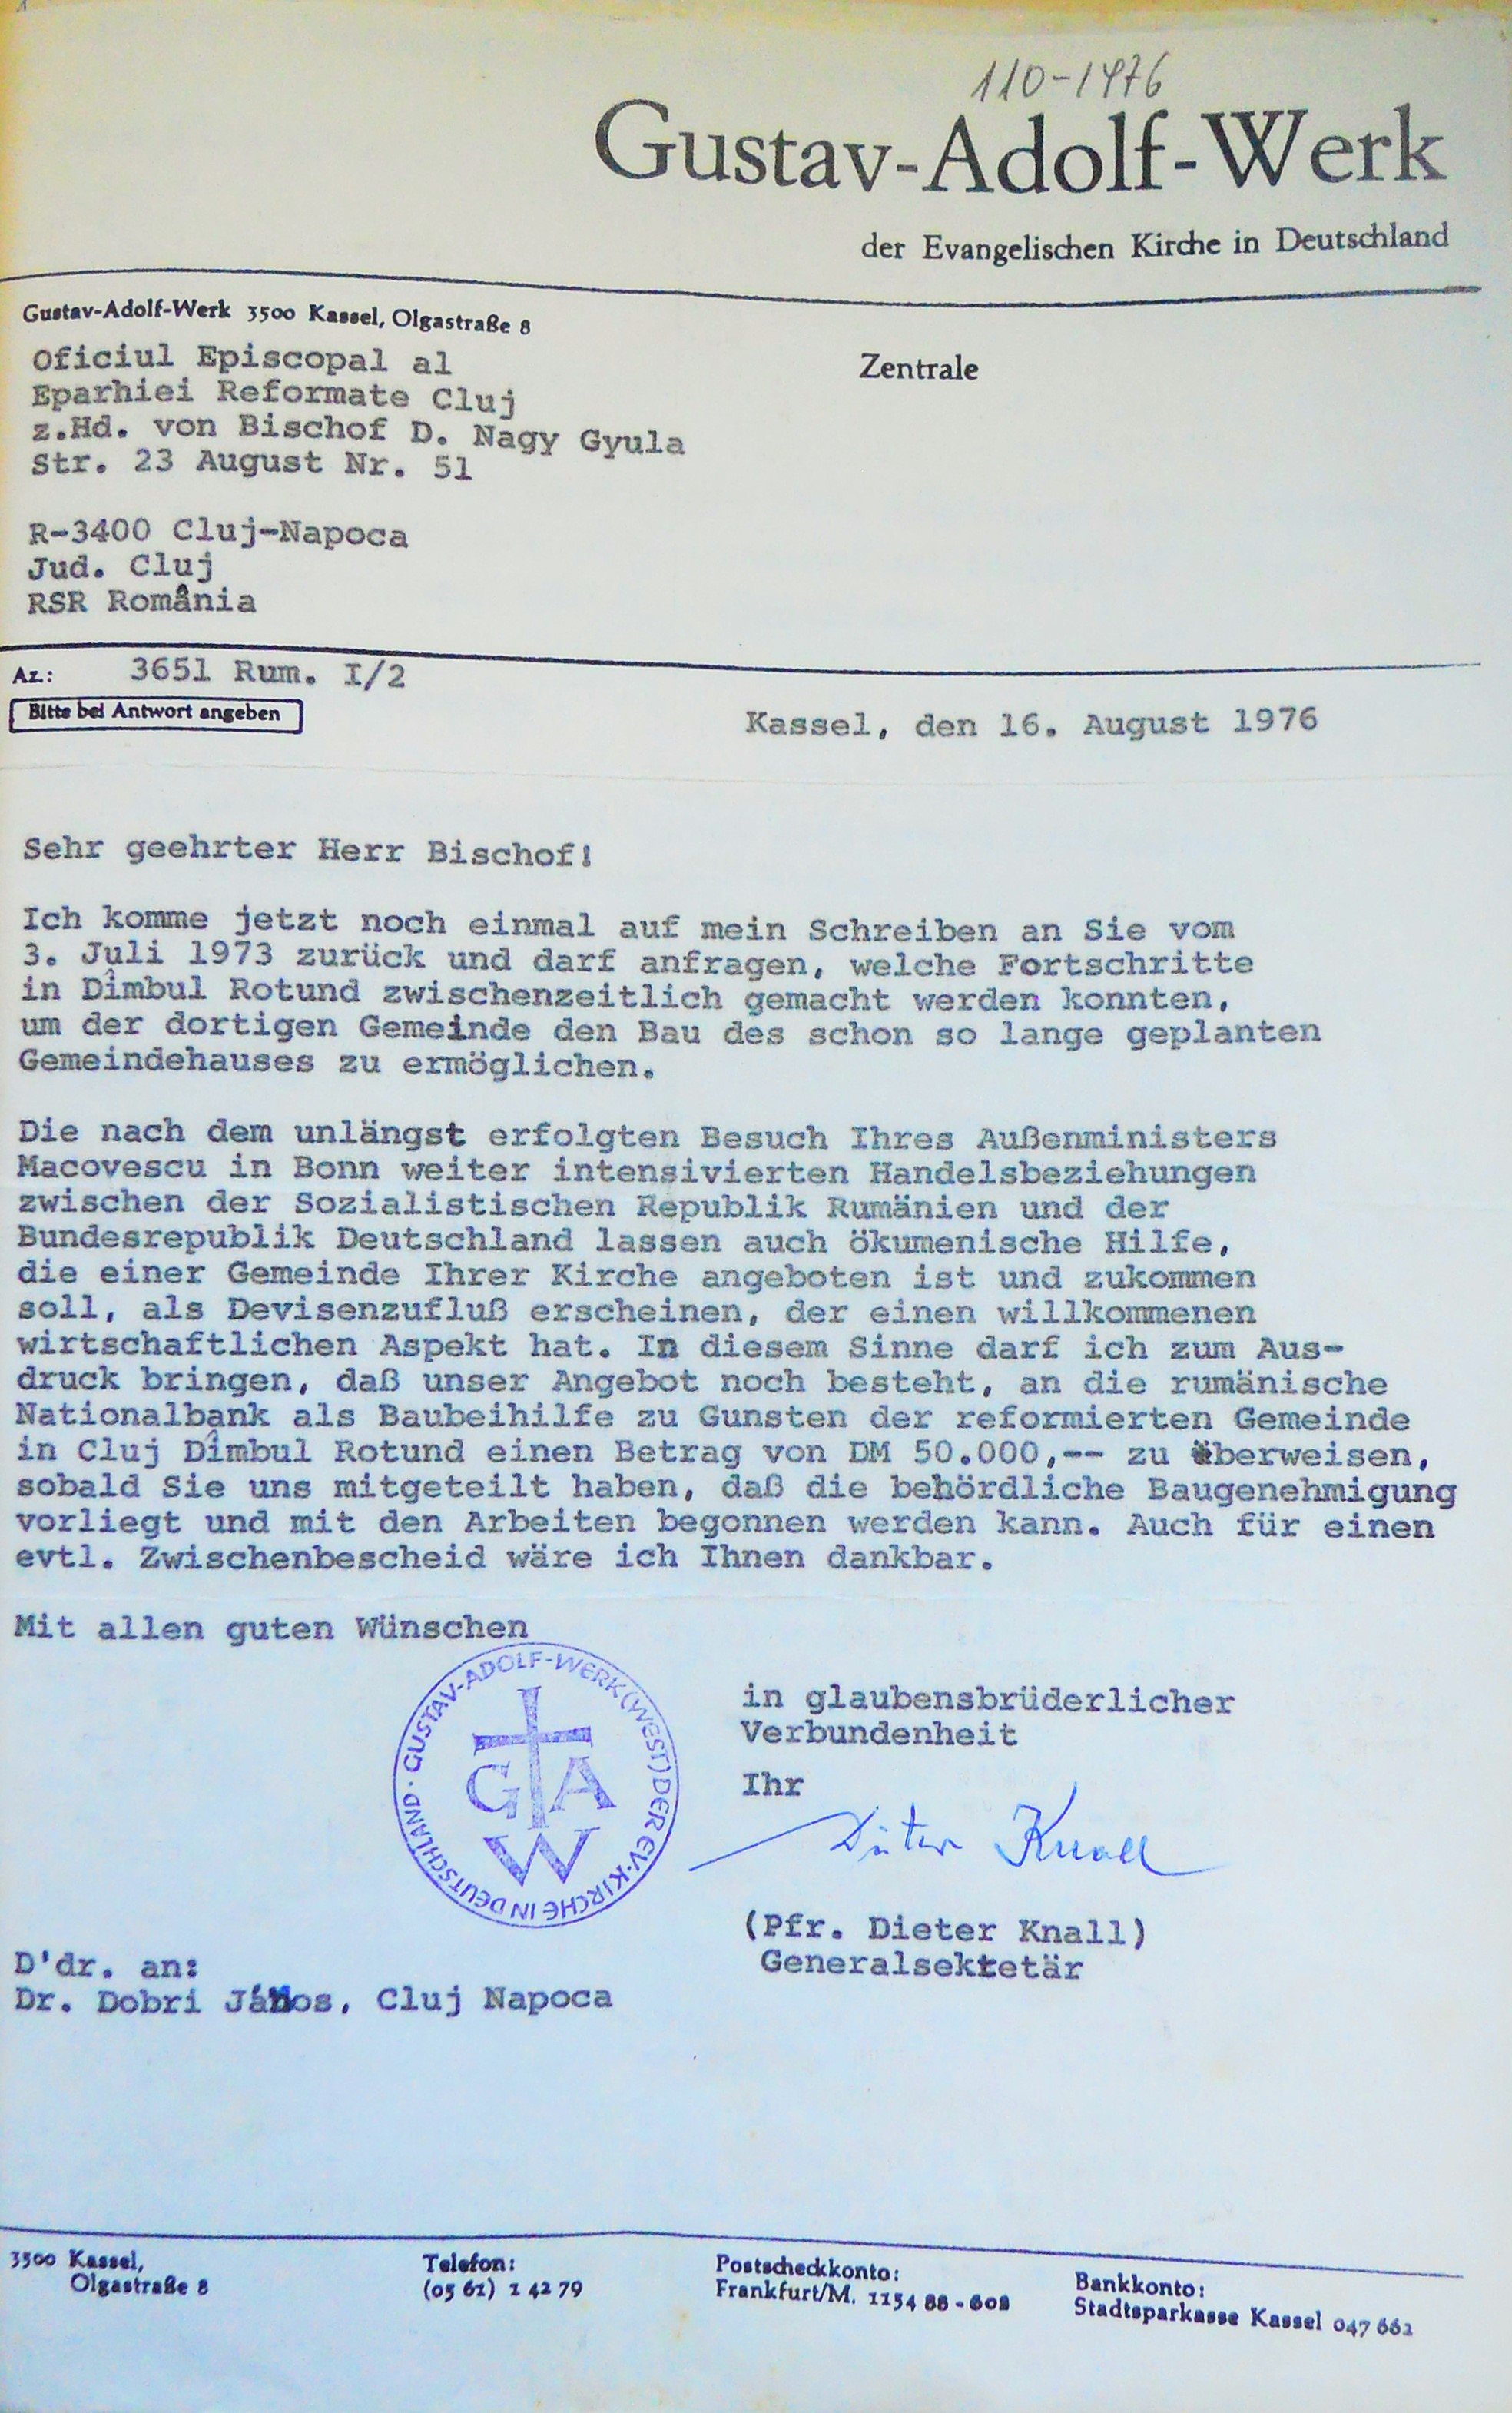 Letter concerning the Gustav Adolf Werk's donation from Federal Republic of Germany (1976)